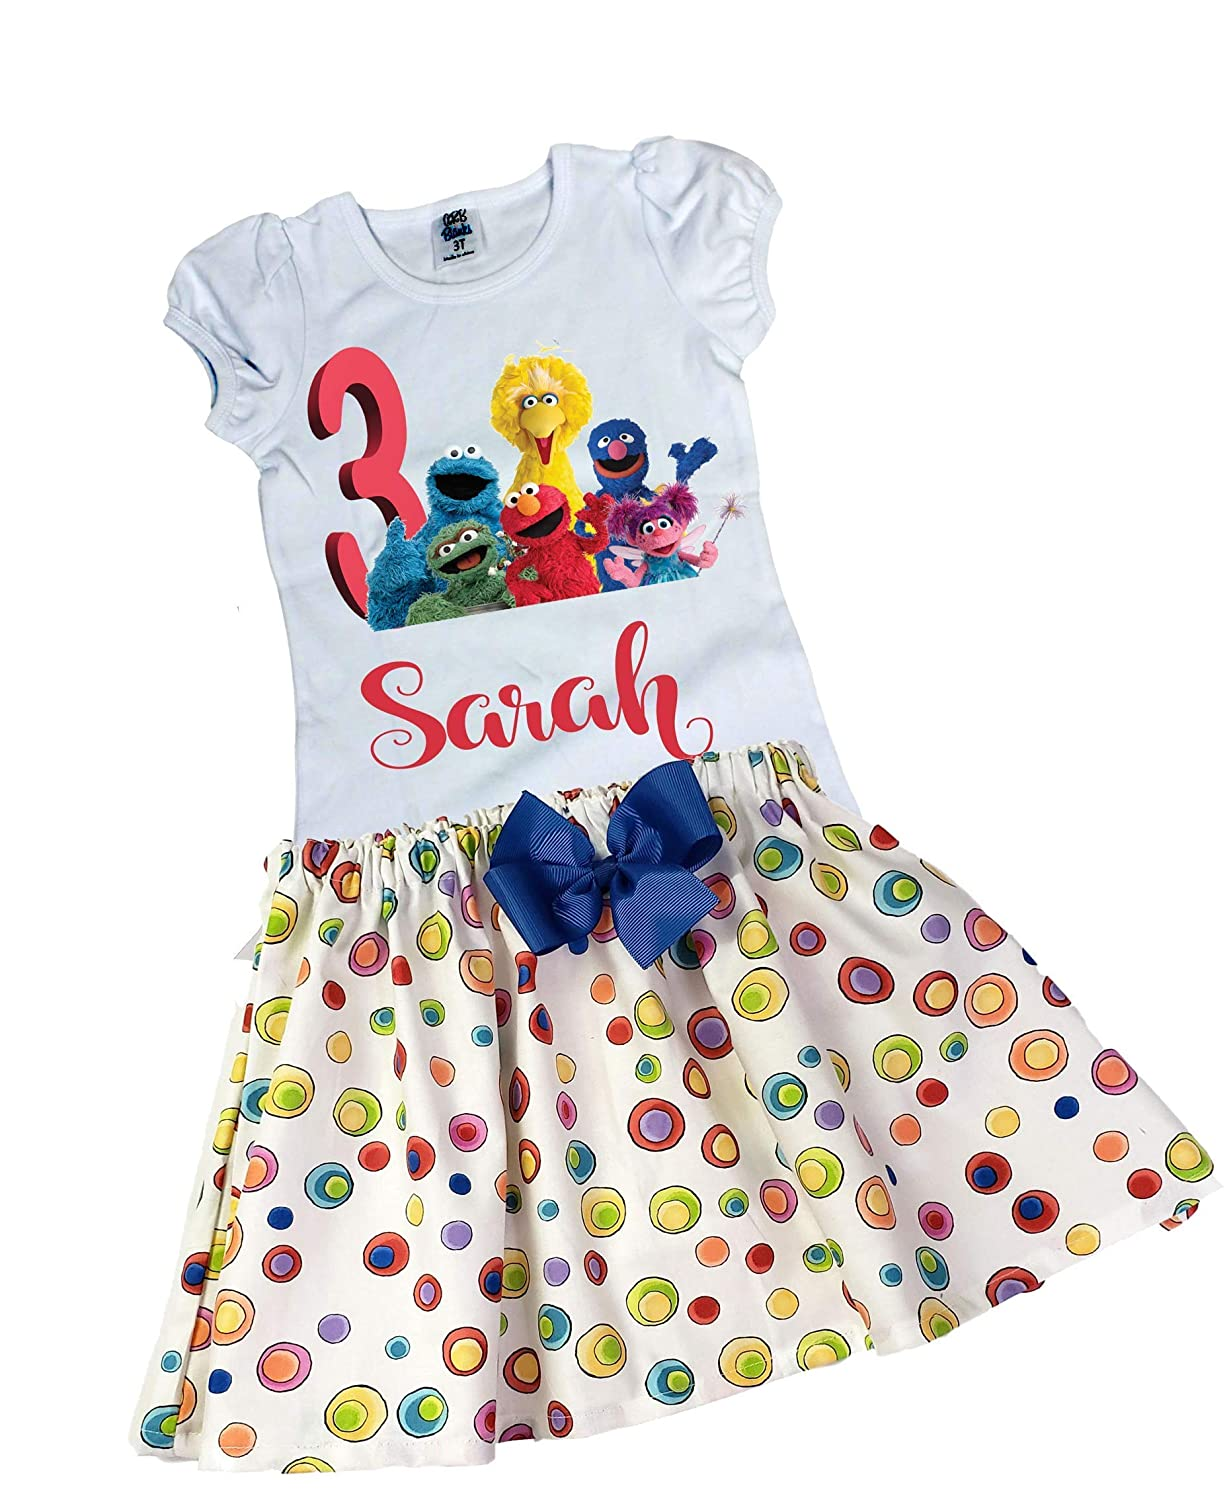 Girl Sesame Street birthday outfit Girl Elmo Sesame Street outfit Girl Elmo name age dress Girl Birthday Elmo Sesame Street outfit